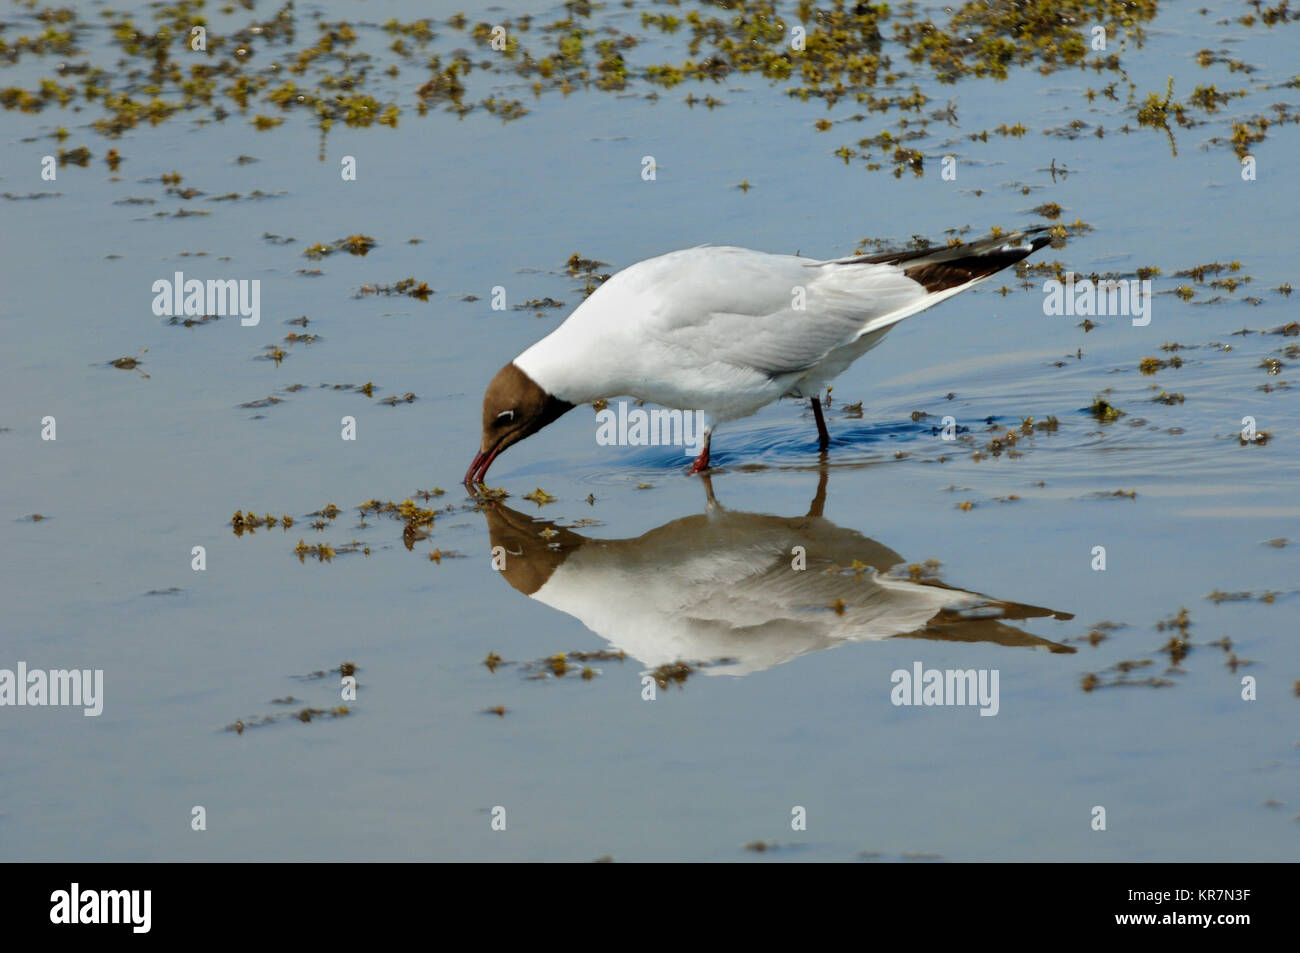 Black-Headed Gull, Larus ridibundus, Feeding in Shallows of Vaccarès Lake or Etang de Vaccarès, Camargue - Stock Image